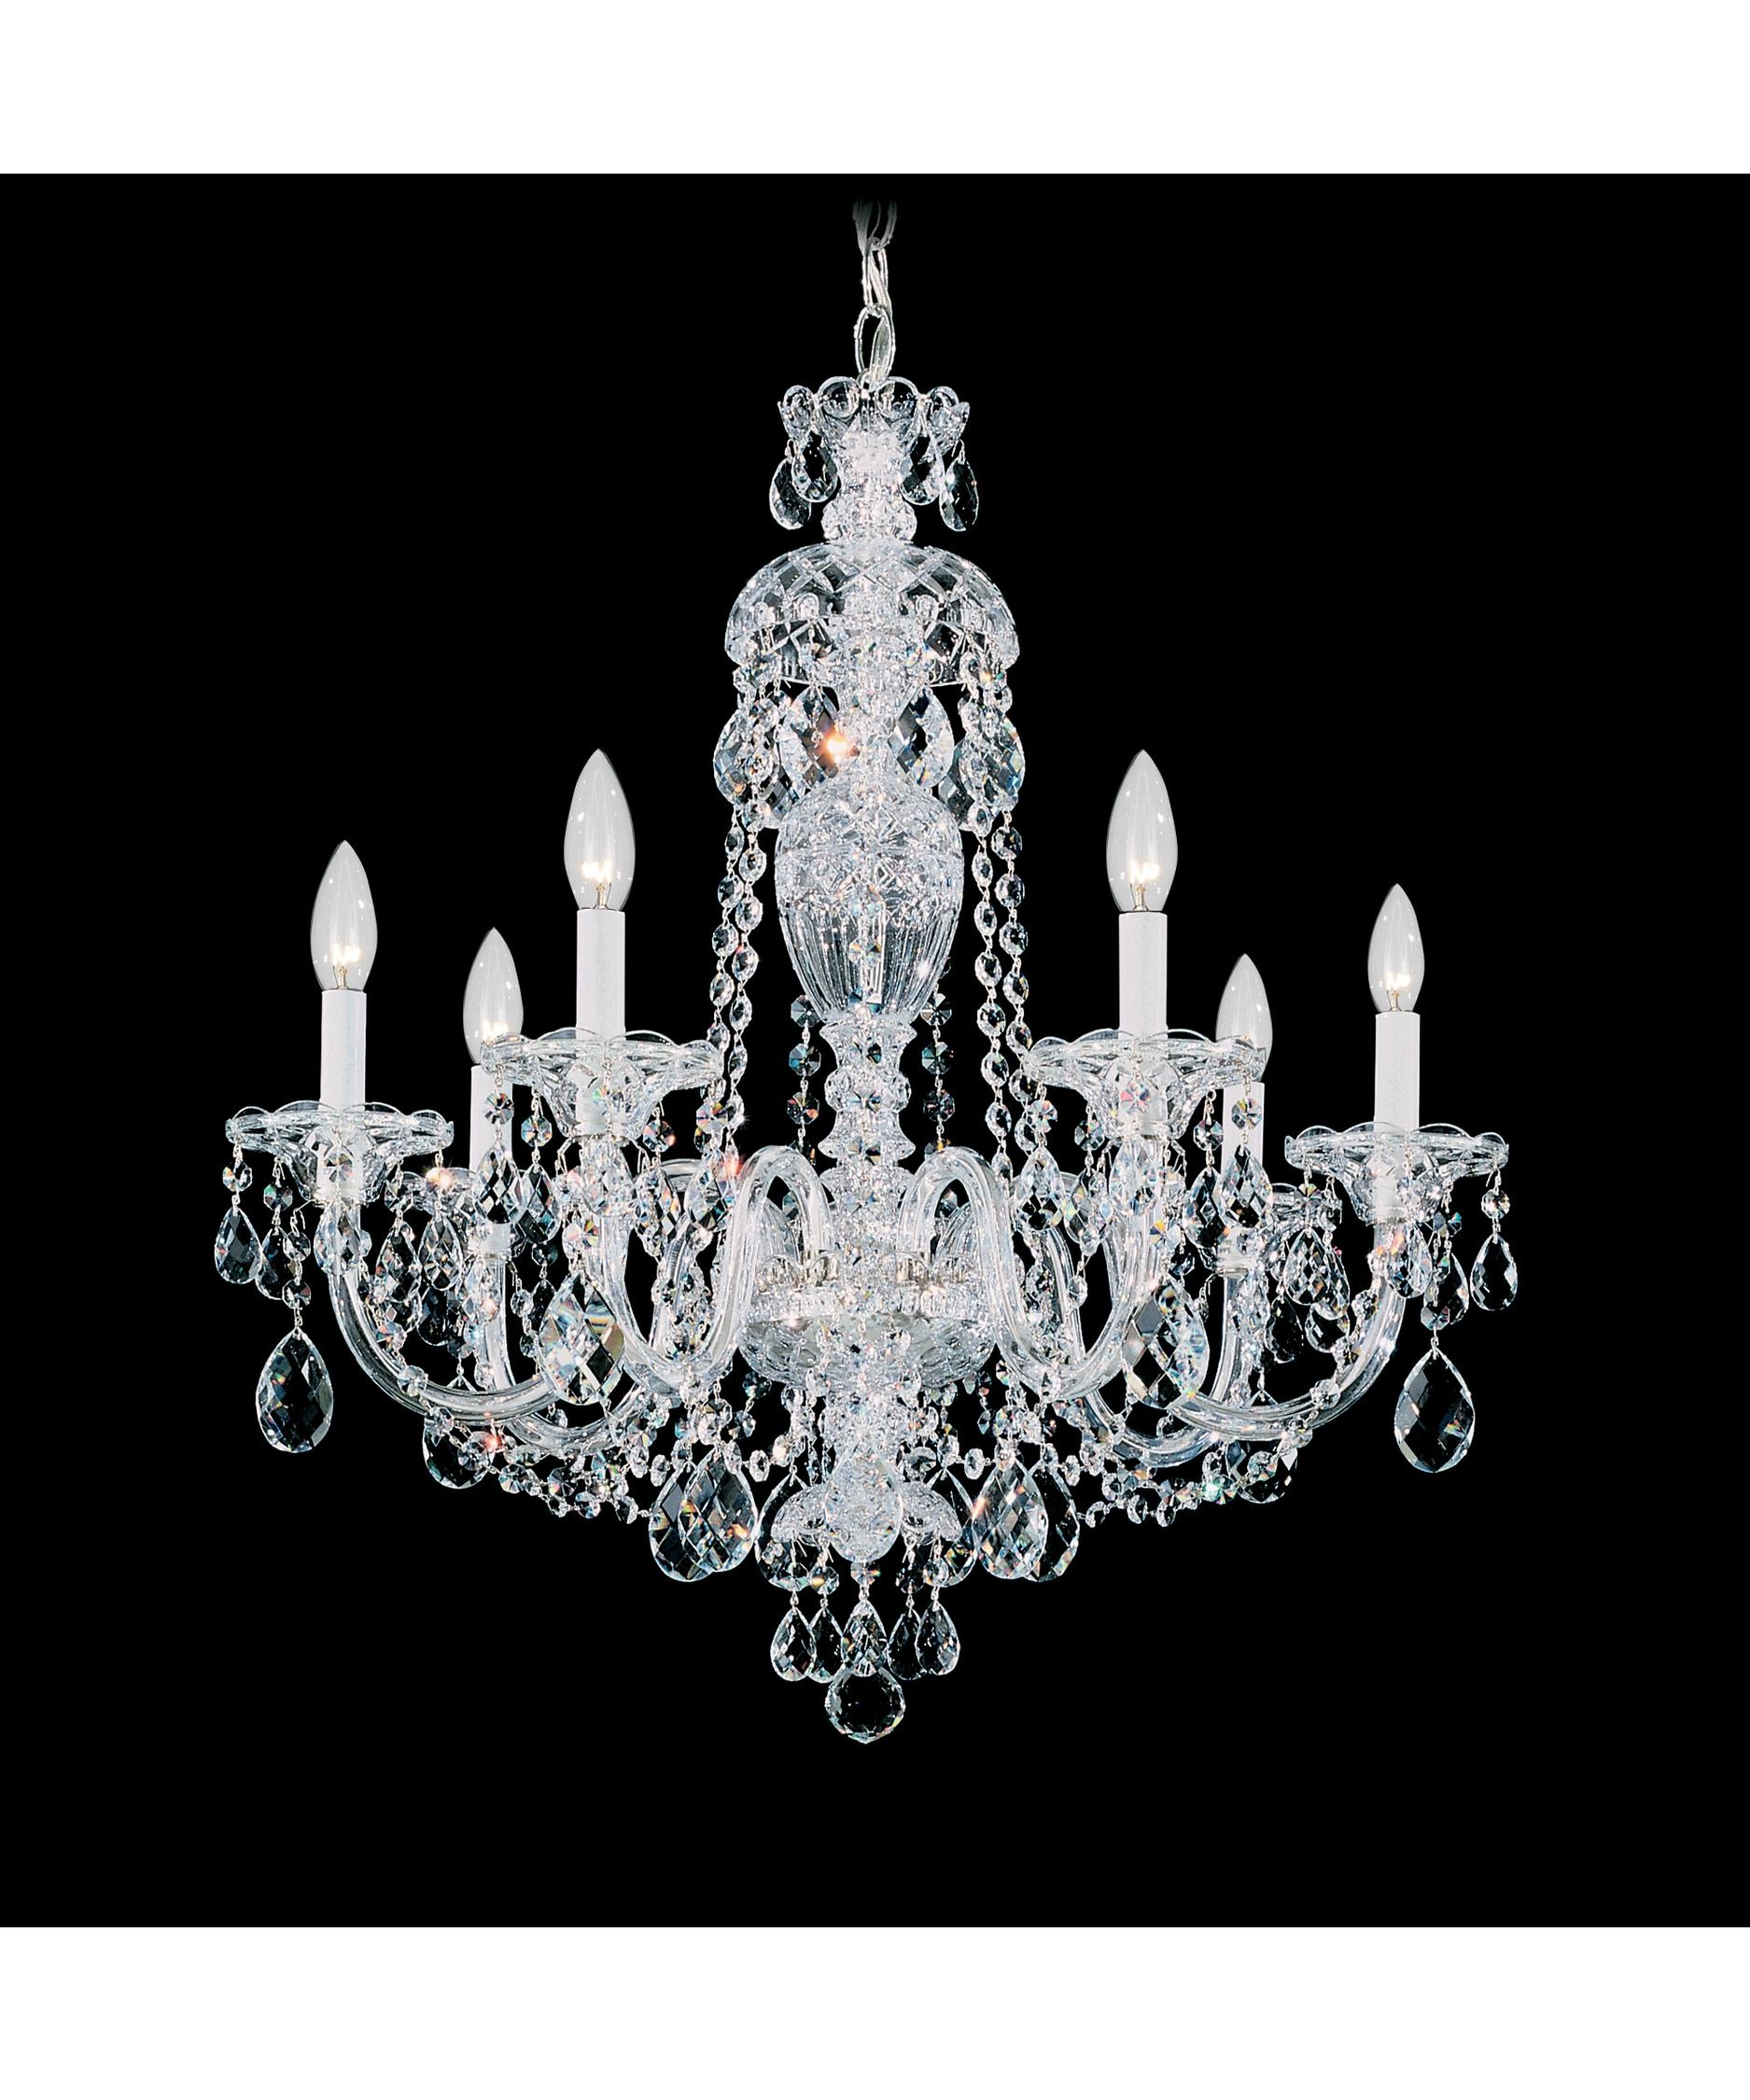 Schonbek 2995 Sterling 25 Inch Wide 7 Light Chandelier Capitol Throughout 7 Light Chandeliers (Image 19 of 25)